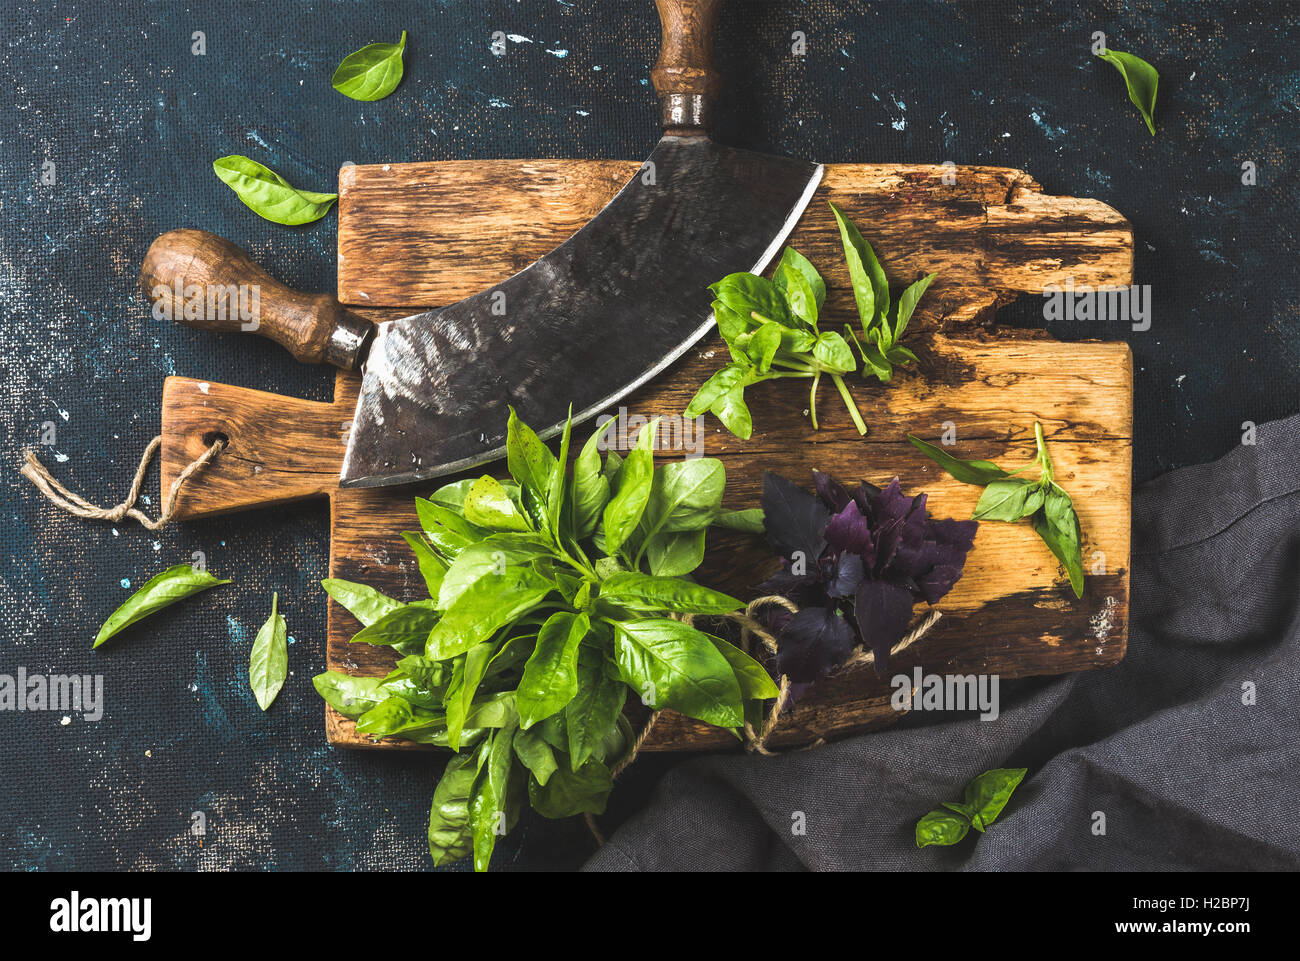 Fresh basil and vintage herb chopper on rustic wooden board - Stock Image